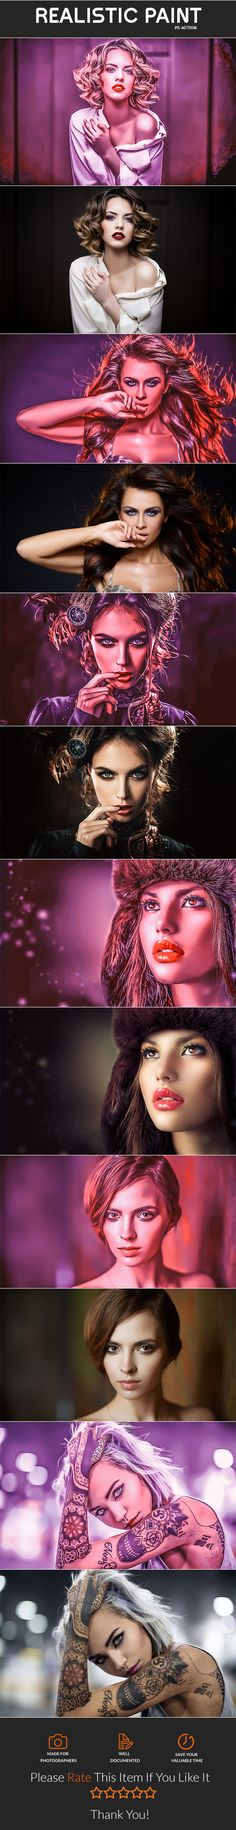 Realistic Paint - Photo Effects Actions